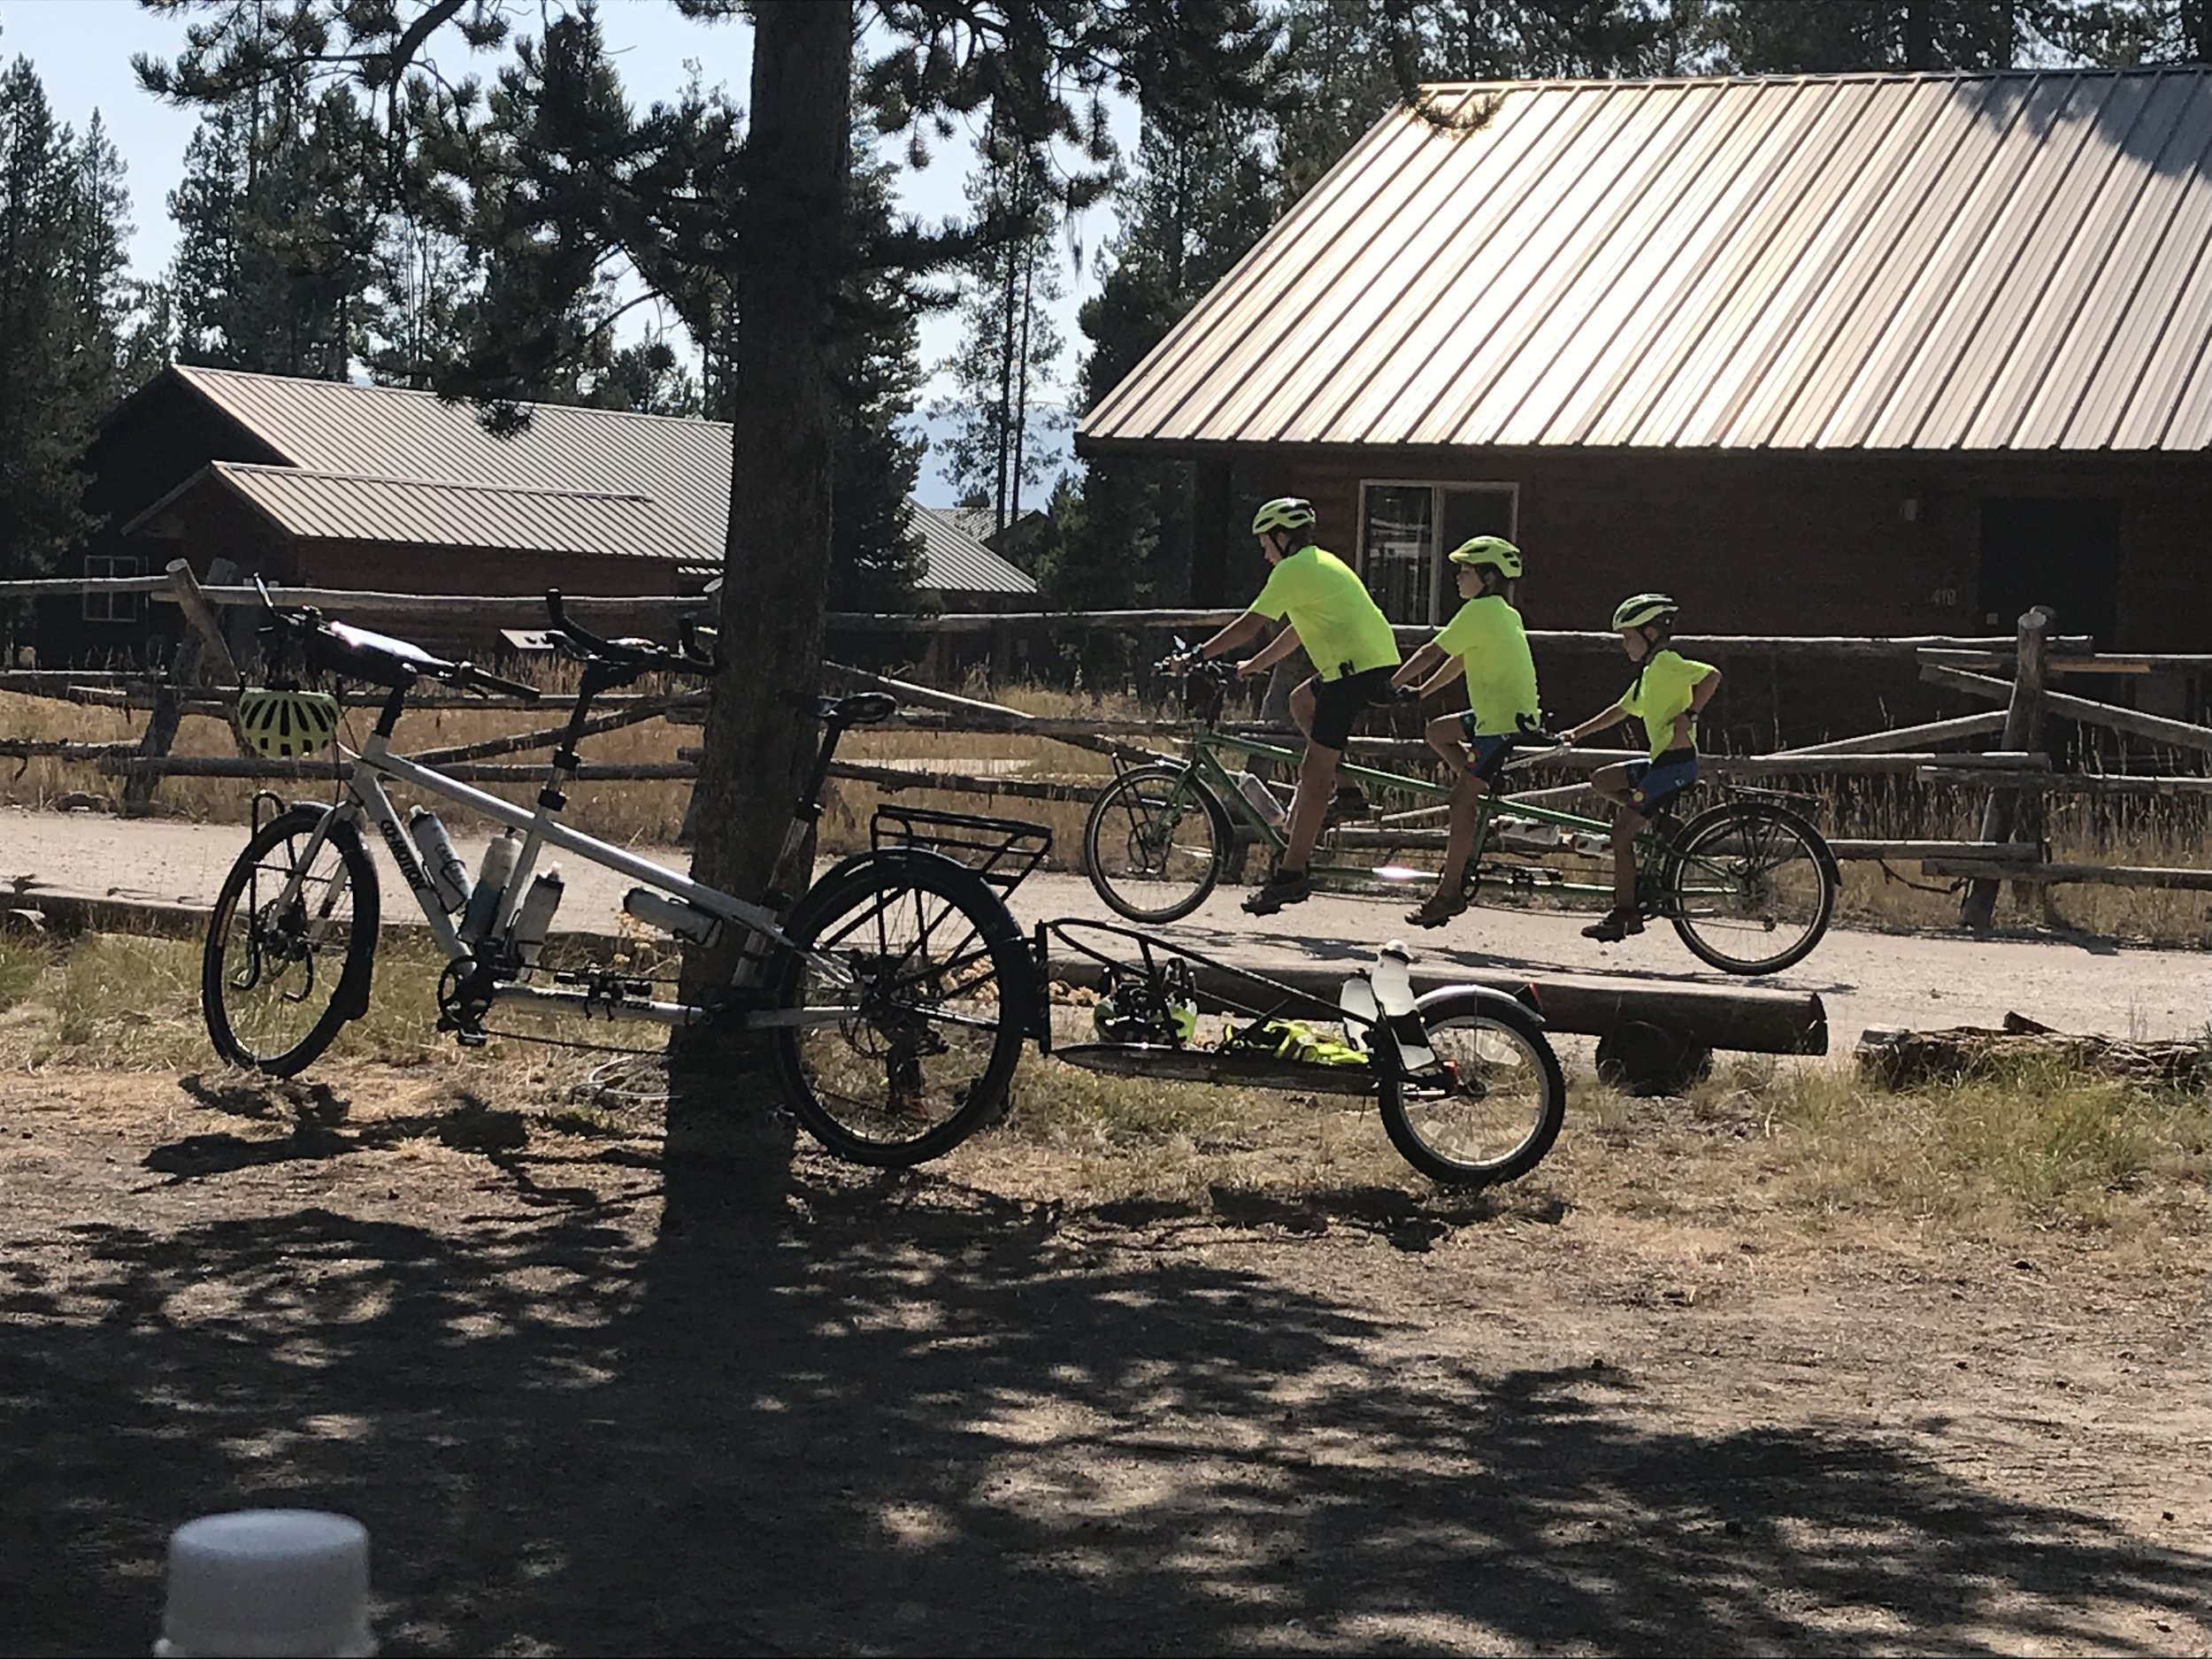 Here are the three boys on the triple all together- just riding around a campground together during some free time. They have really formed some tight bonds on this trip, despite the normal moments of conflict and arguing that you might expect.